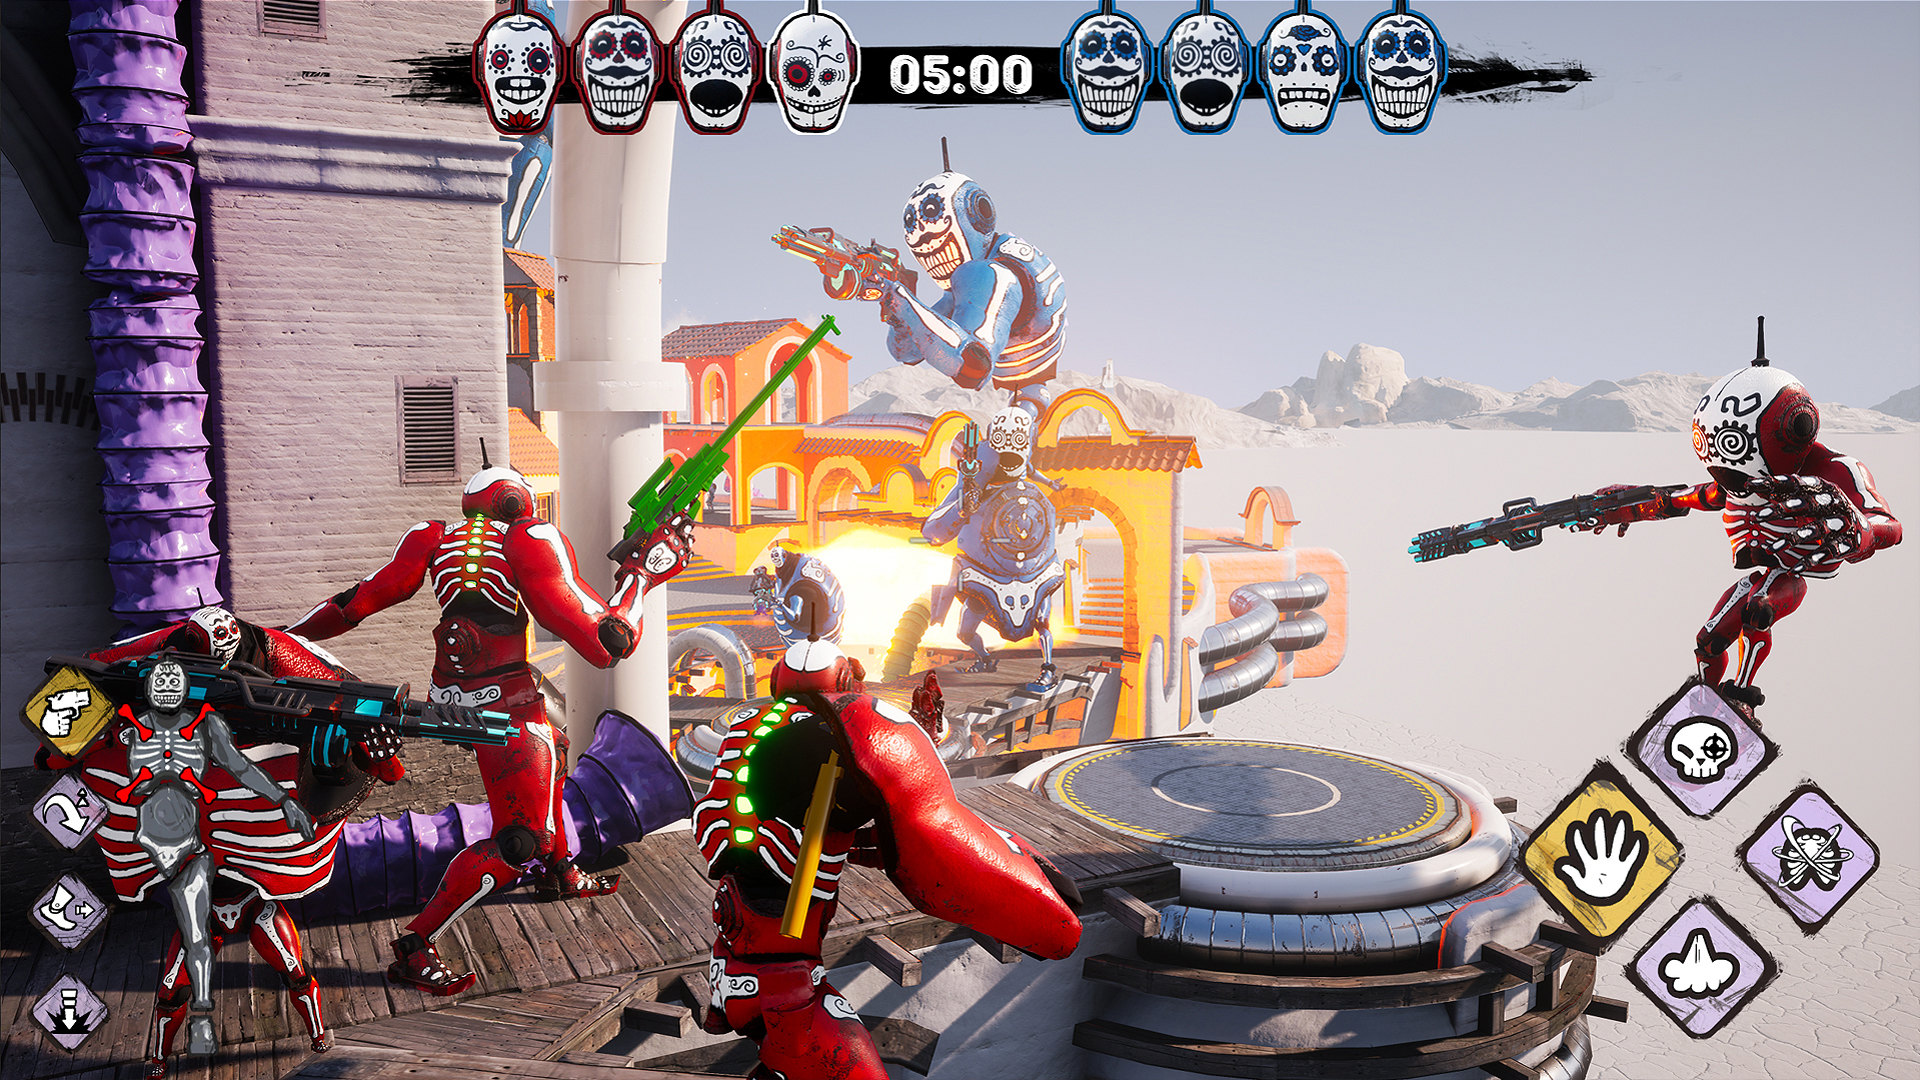 Asi Es Morphies Law Lo Nuevo De Nintendo Switch Consola Y Tablero Each platform reflects the character of the morphies that built and decorated it. nintendo switch consola